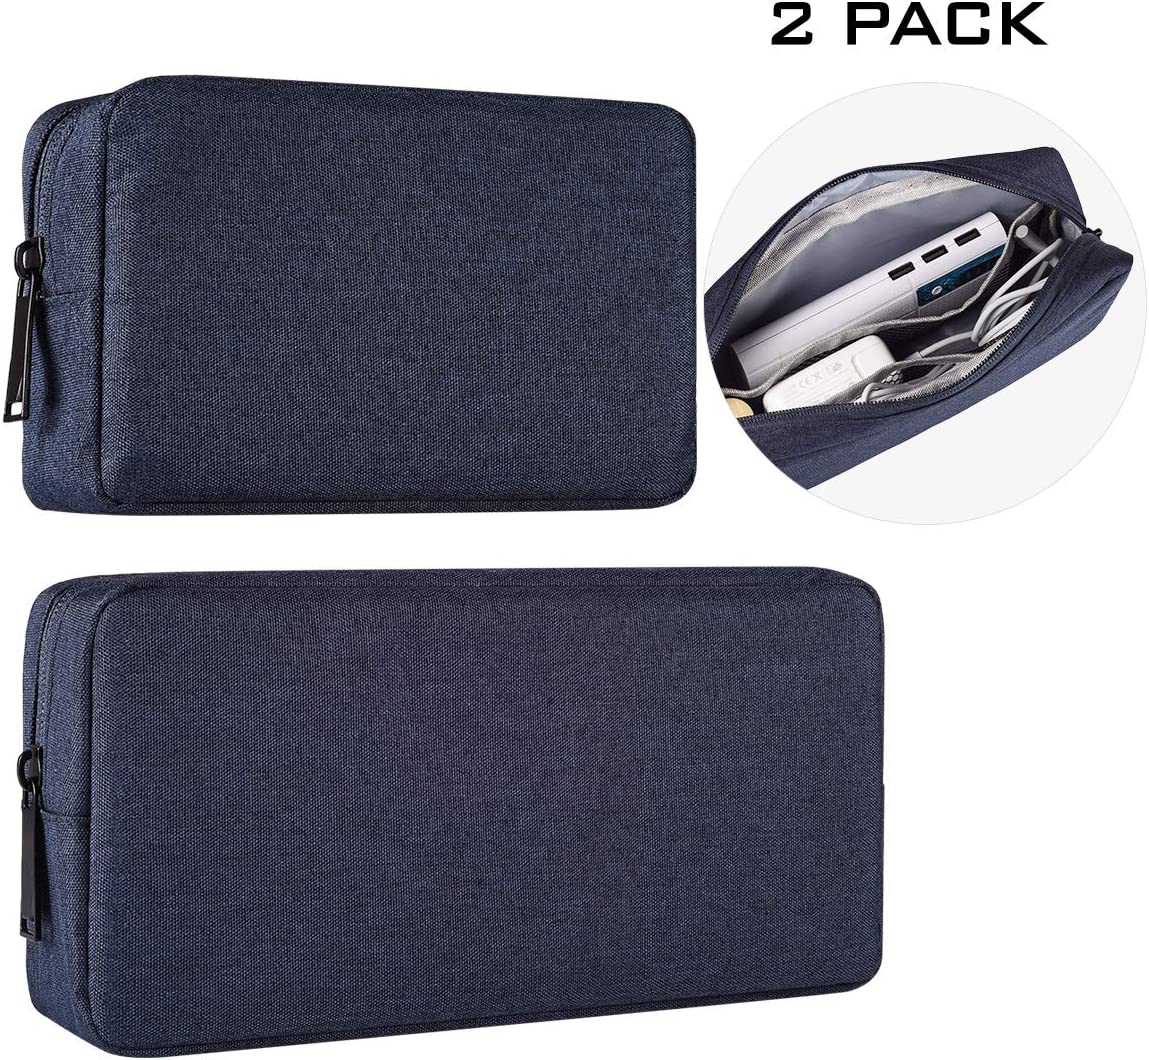 2-Pack Portable Storage Pouch Bag, Universal Electronics Accessories Case Cable Organizer Compatible with Hard Drive, Laptop Mouse, Power Bank, Adapter, Cellphone, Cosmetics (Small+Big-Navy Blue)